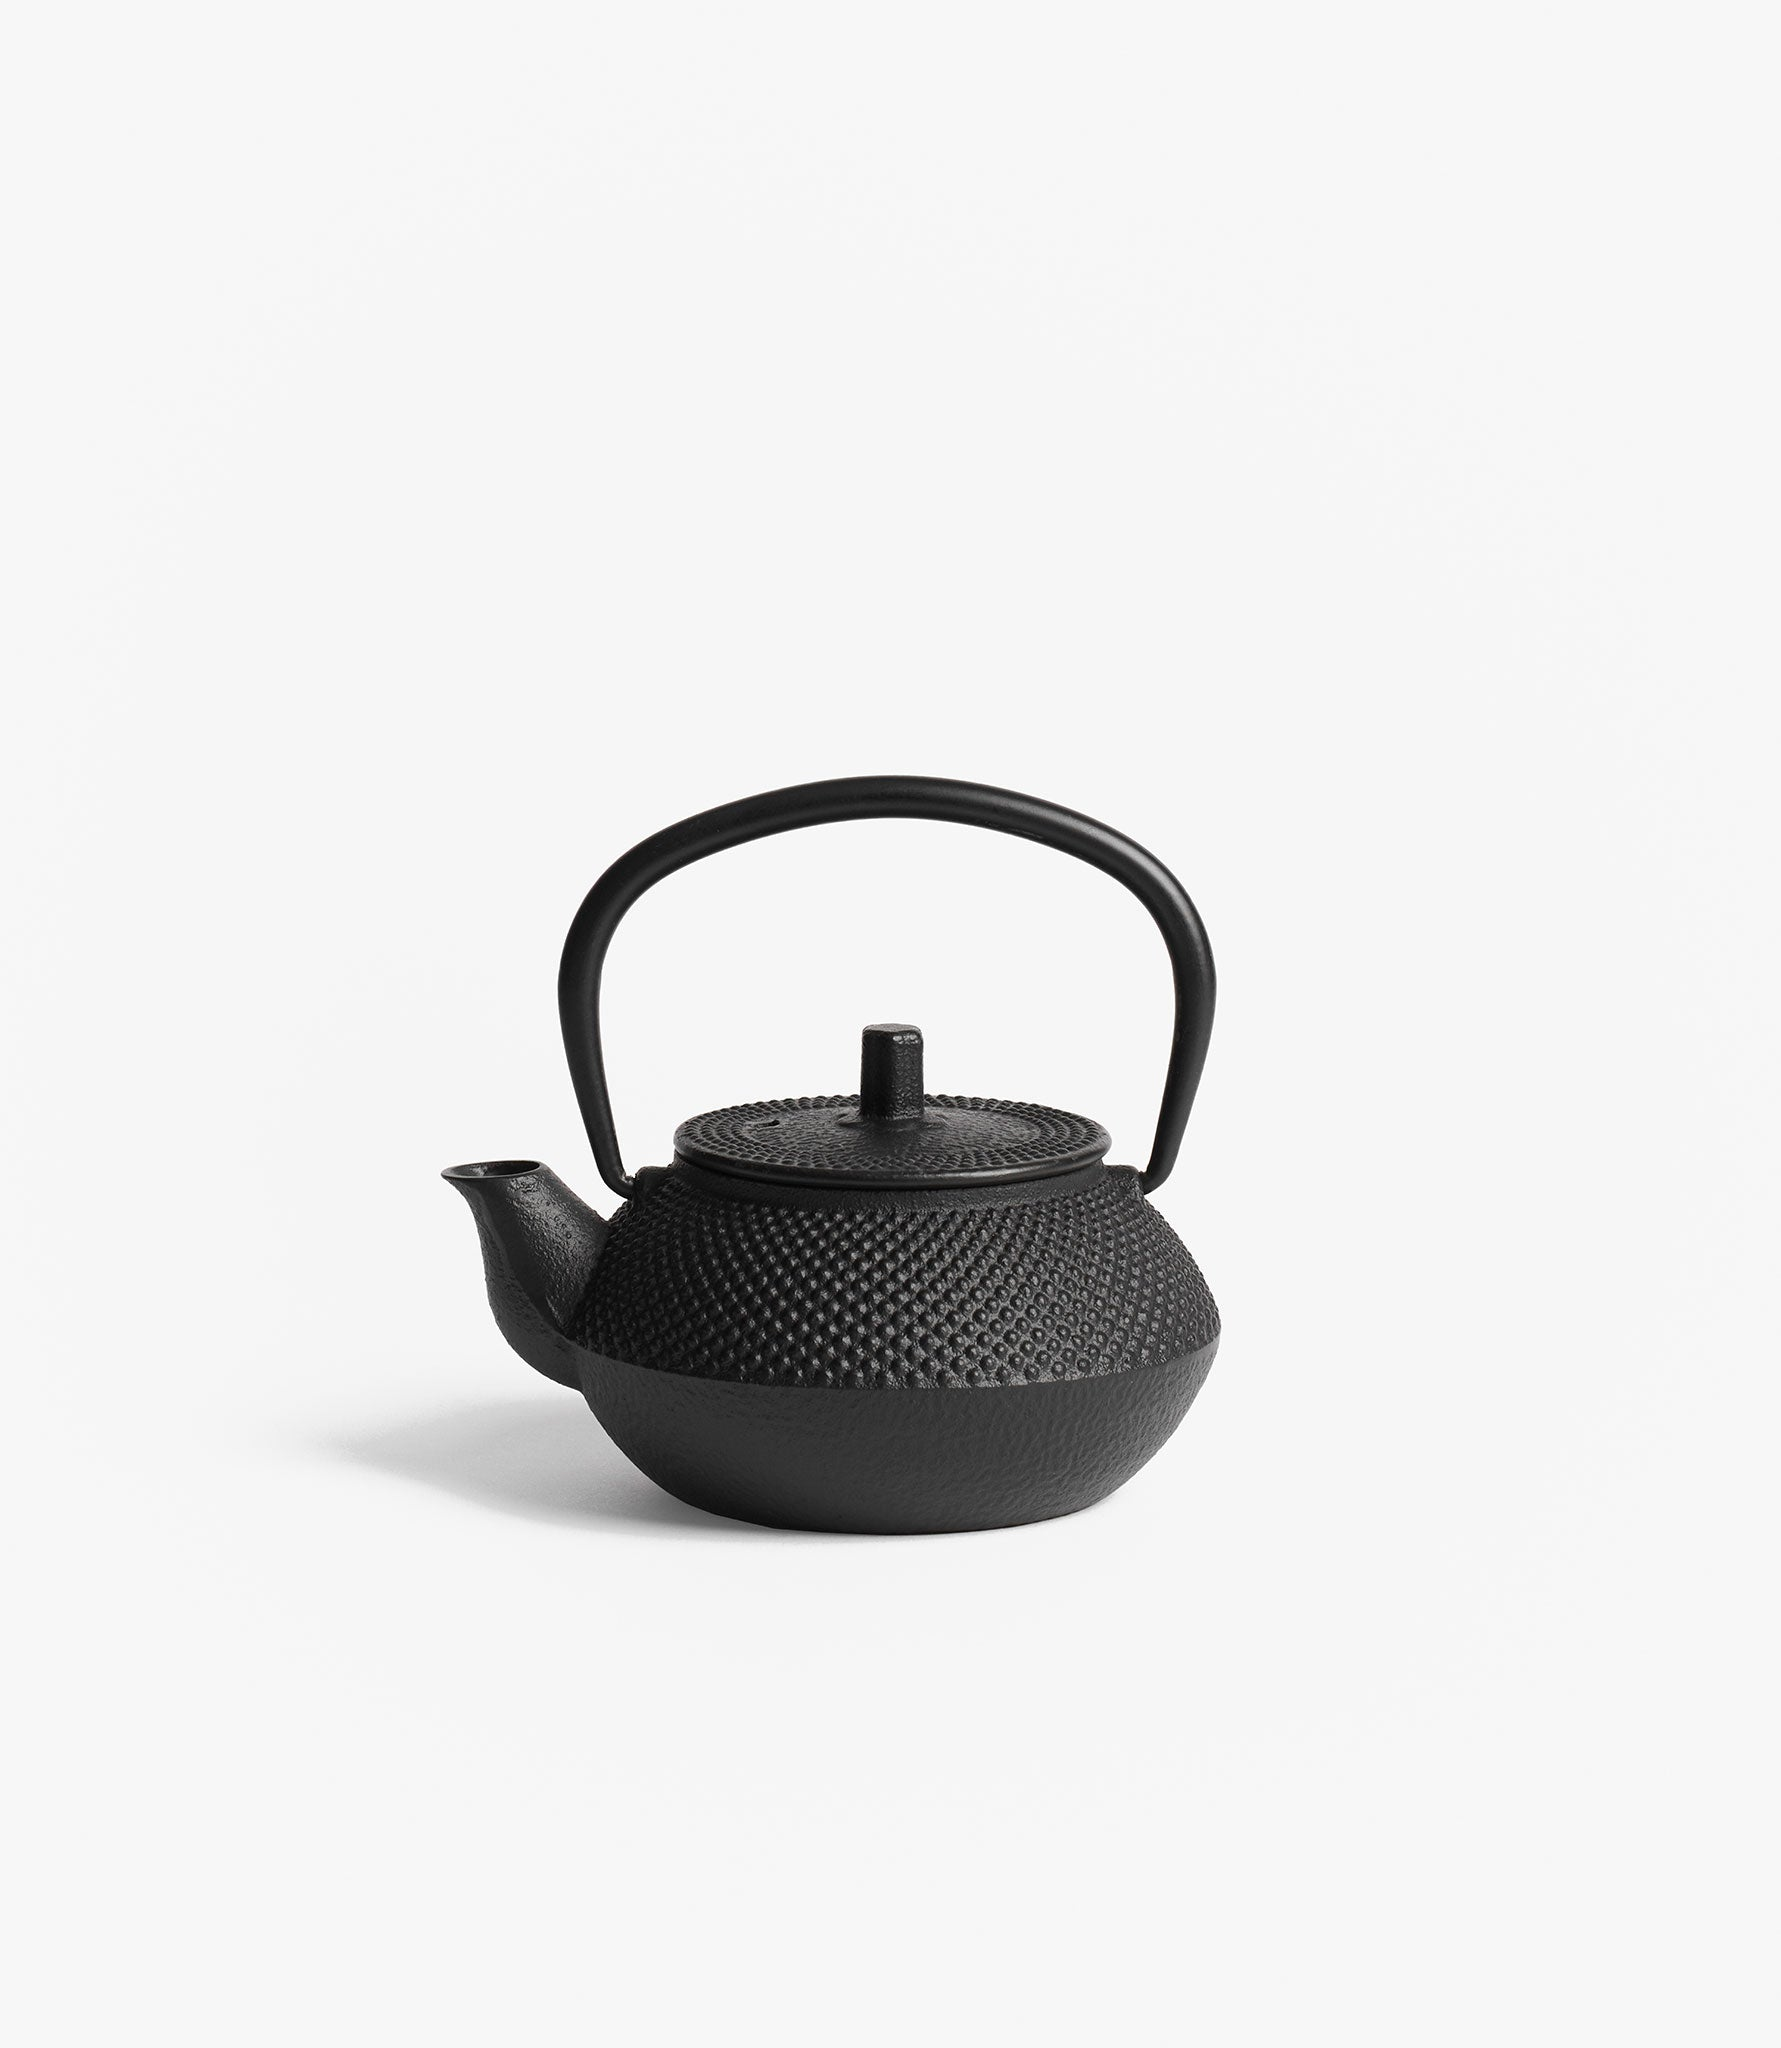 Handcrafted cast iron teapot 0.3l